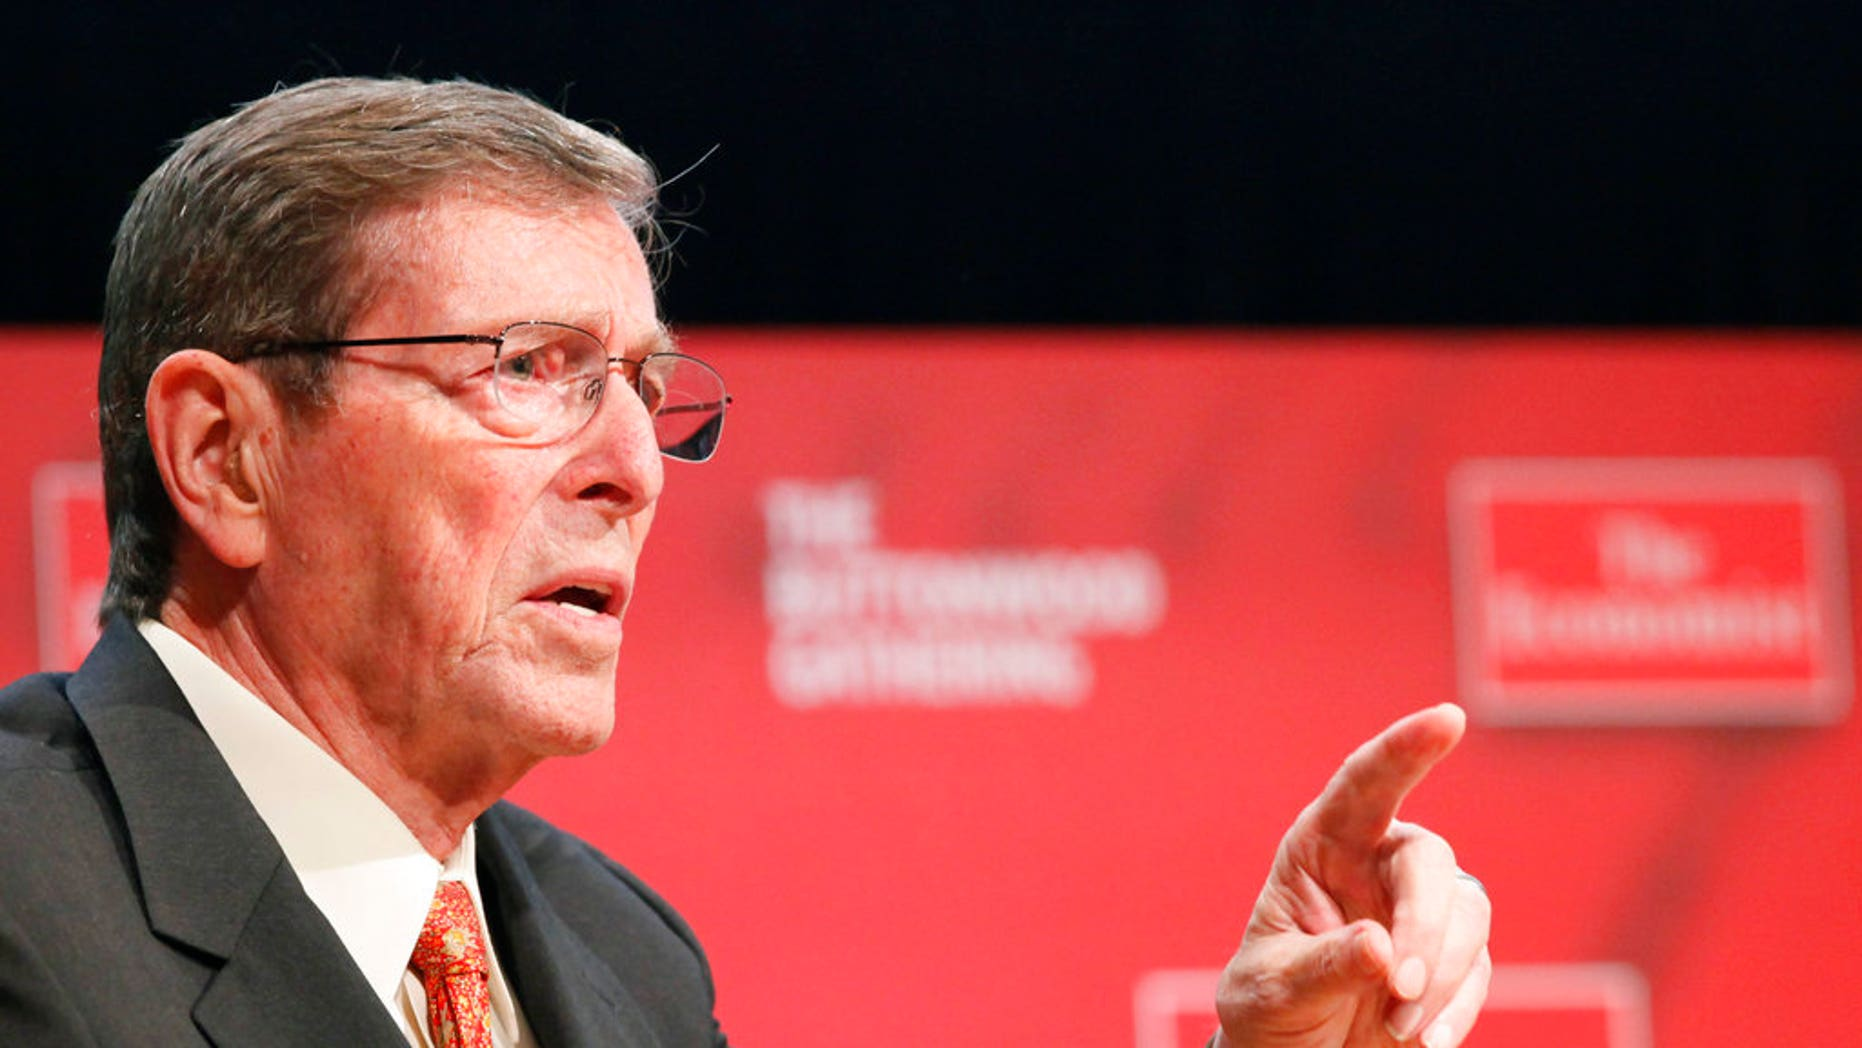 Pete Domenici, who became a power broker in the Senate for his work on the federal budget and energy policy, has died.